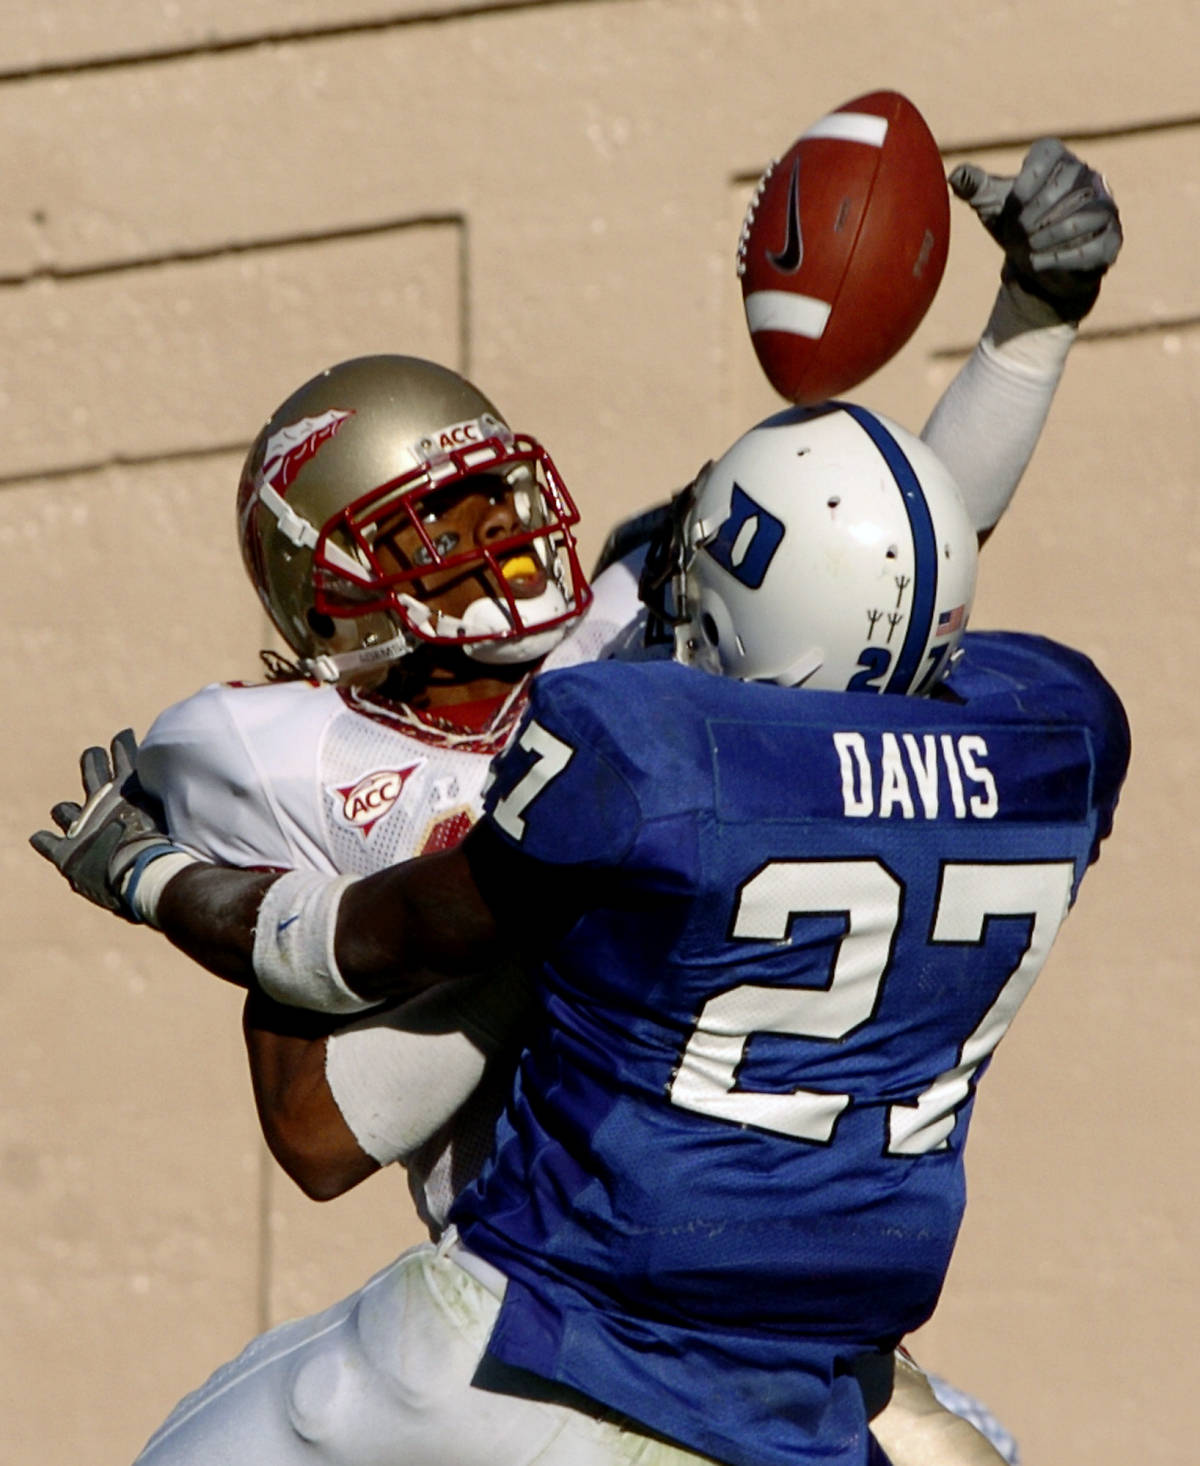 Duke's Chris Davis (27) intercepts a pass intended for Florida State's Preston Parker in the second half of a college football game in Durham, N.C., Saturday, Oct. 14, 2006. Florida State won 51-24. (AP Photo/Sara D. Davis)